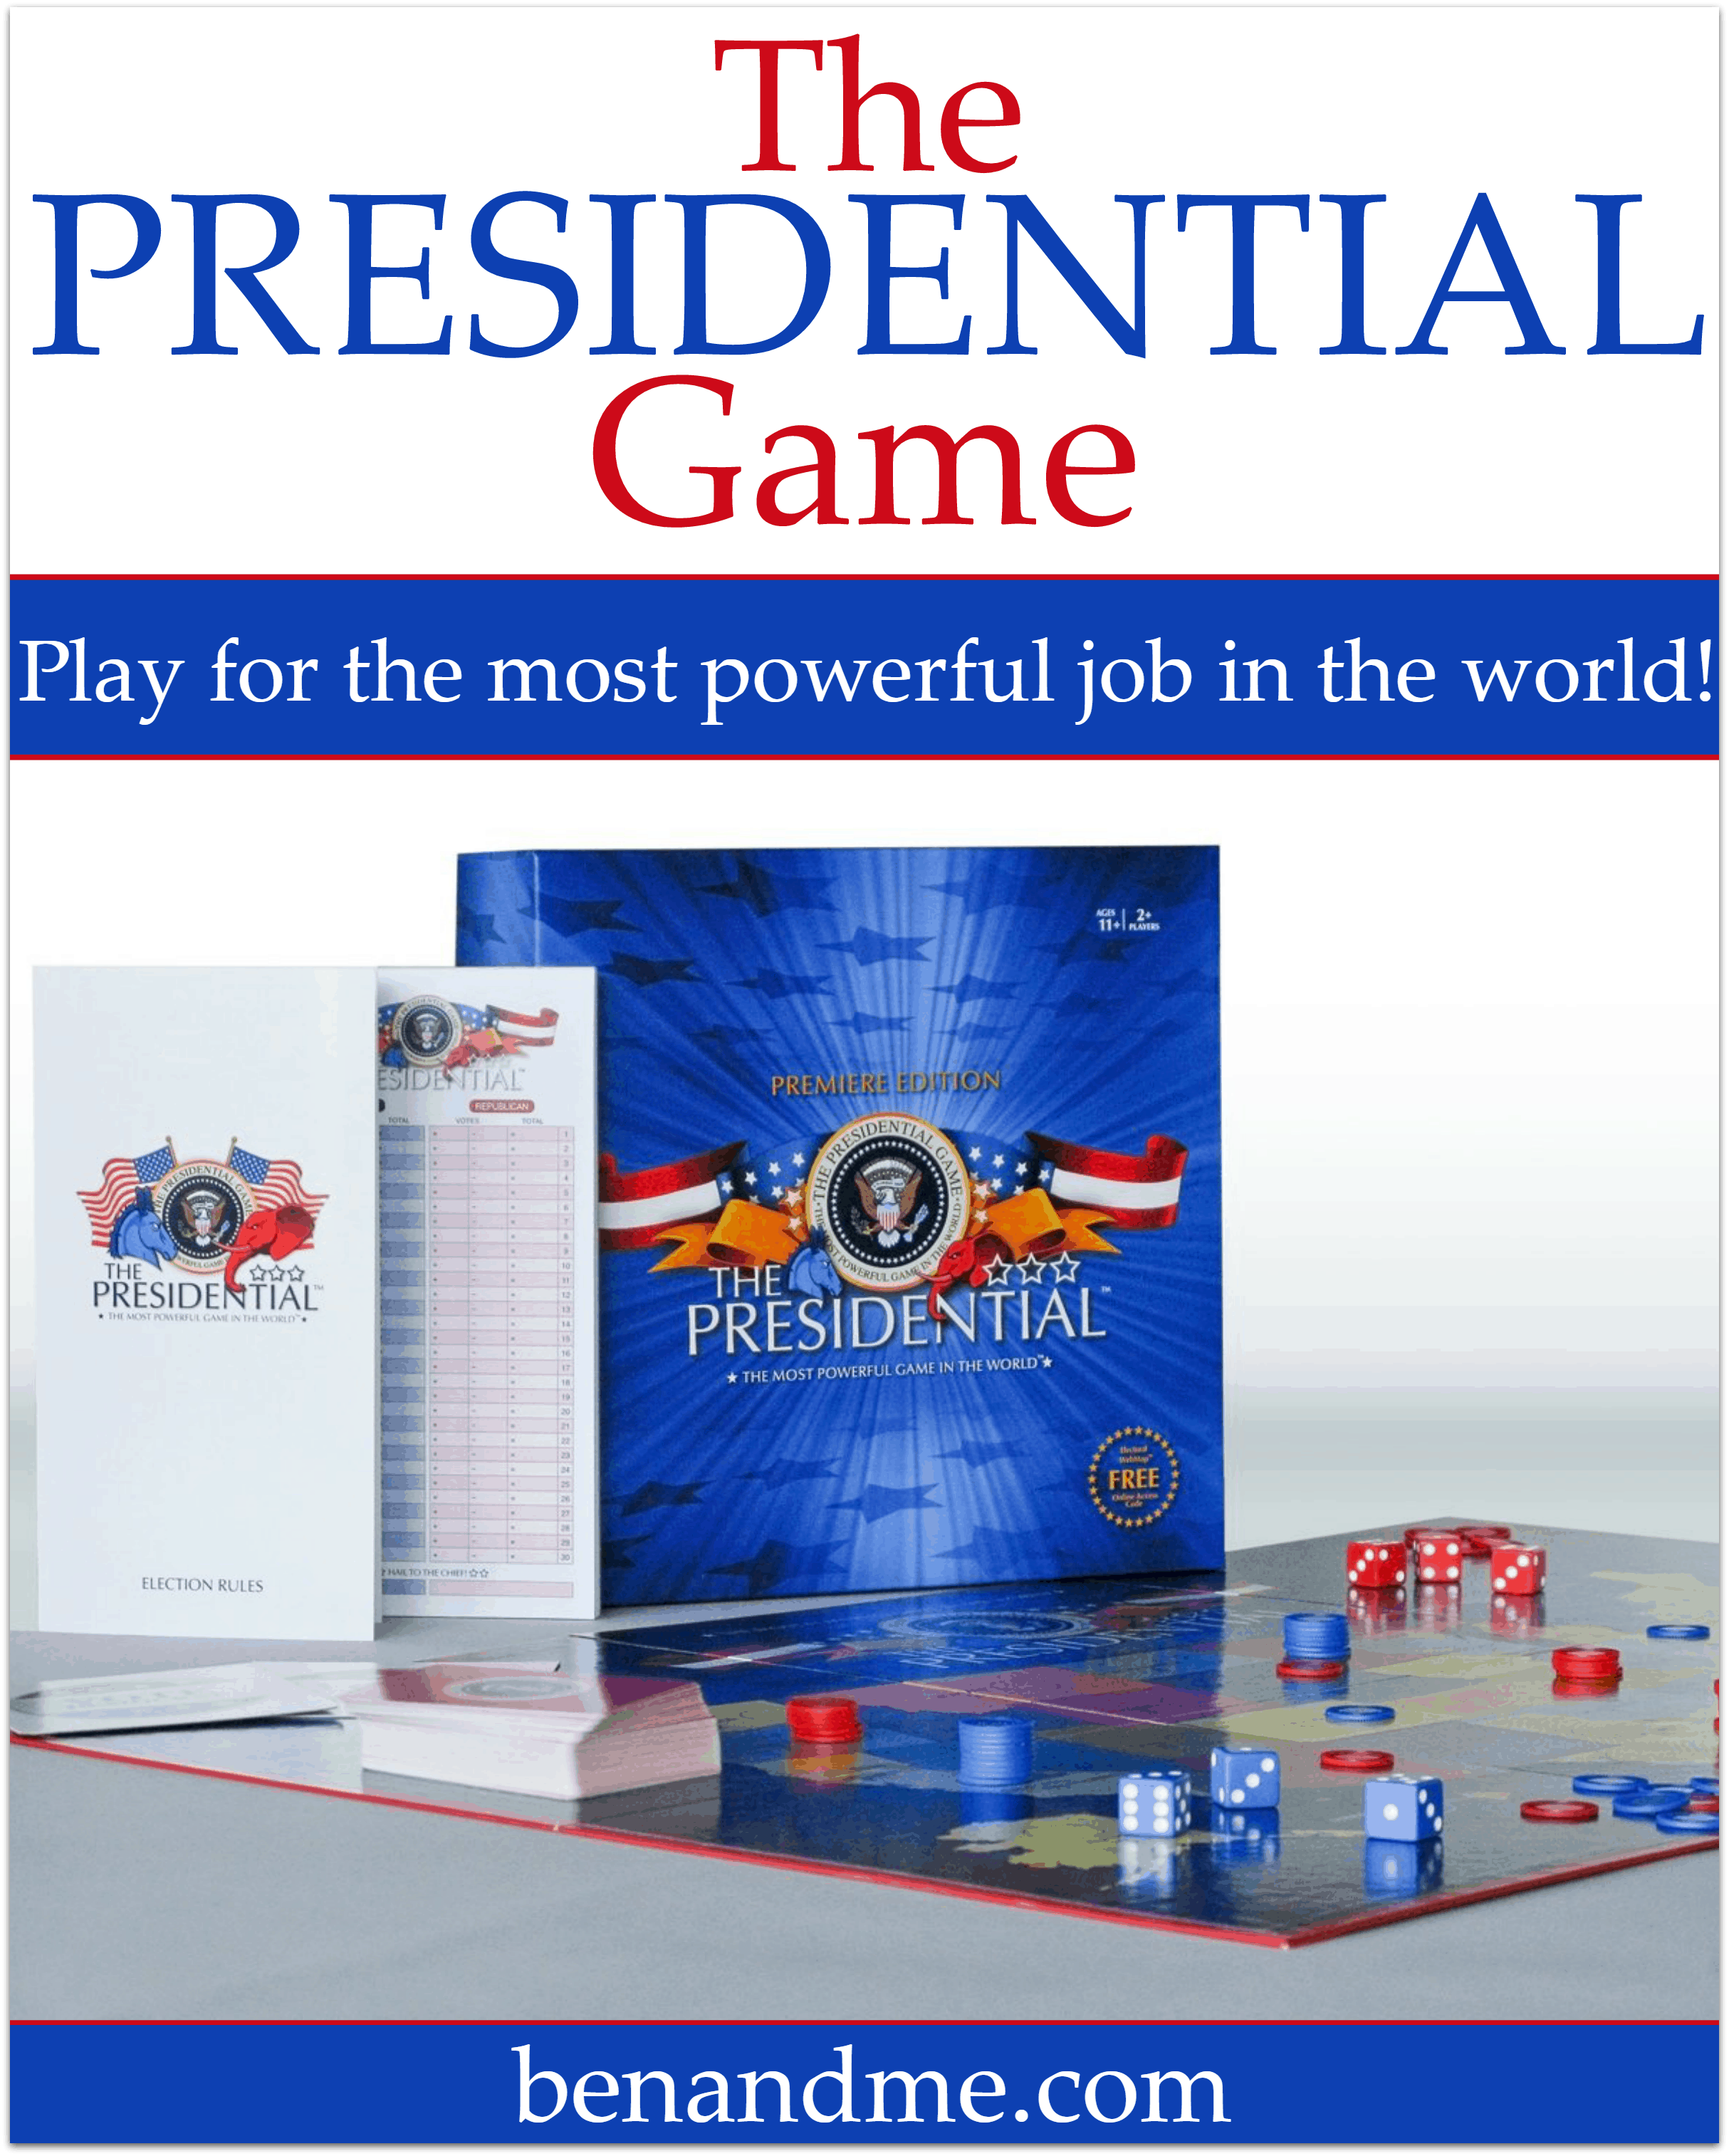 The Presidential Game Review